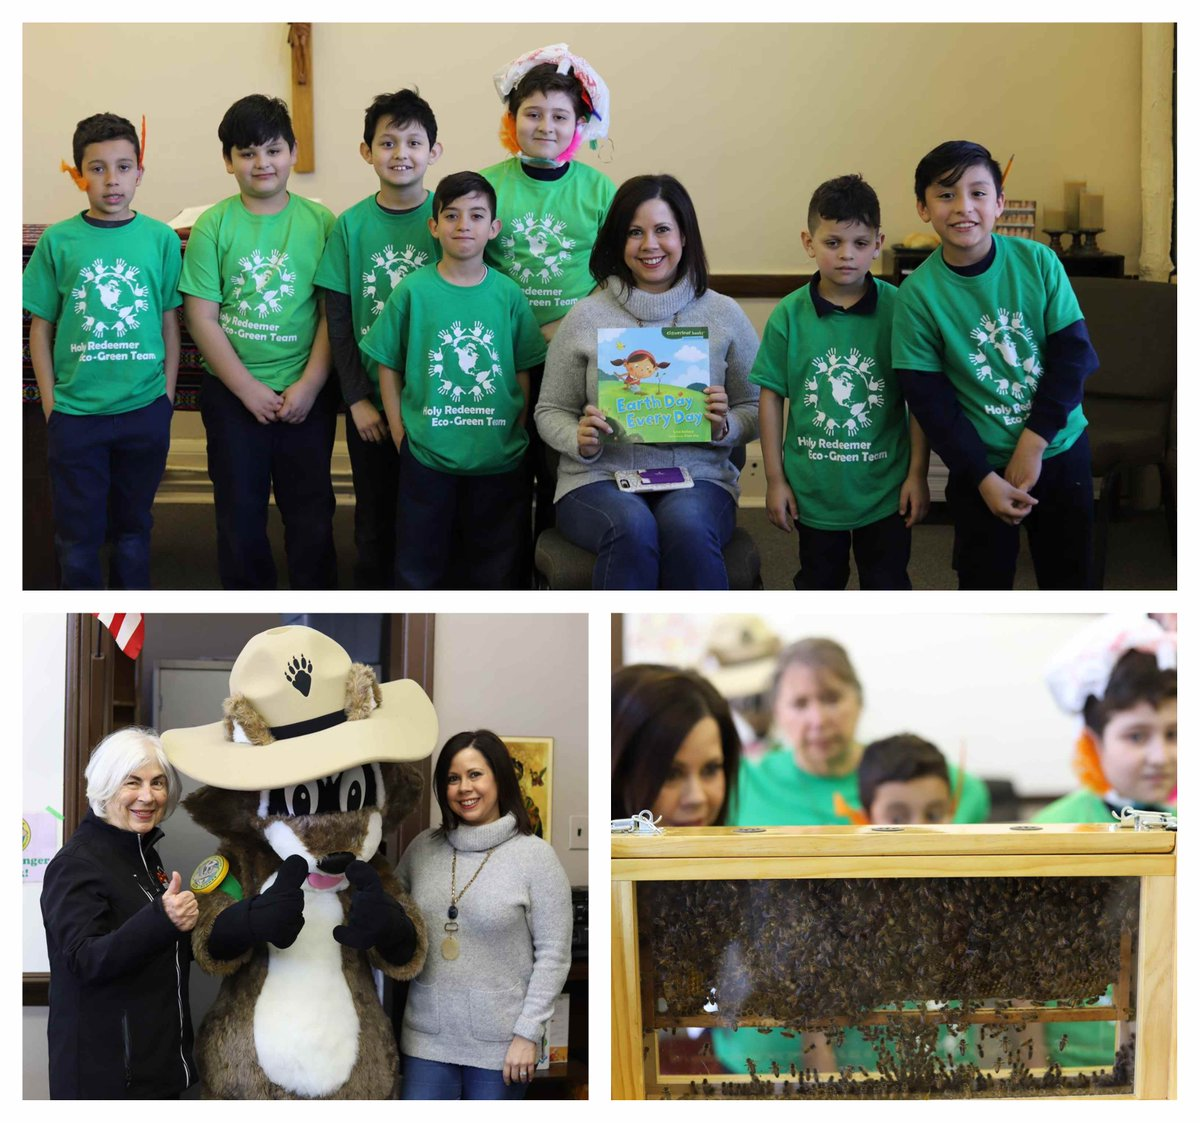 test Twitter Media - Happy #EarthDay!  Holy Redeemer Grade School celebrated by having activities for students to learn how to help promote the environment and ways to protect our Earth. Linzie Venegas, Vice President, read to all the classrooms! https://t.co/rcS55MDH5k